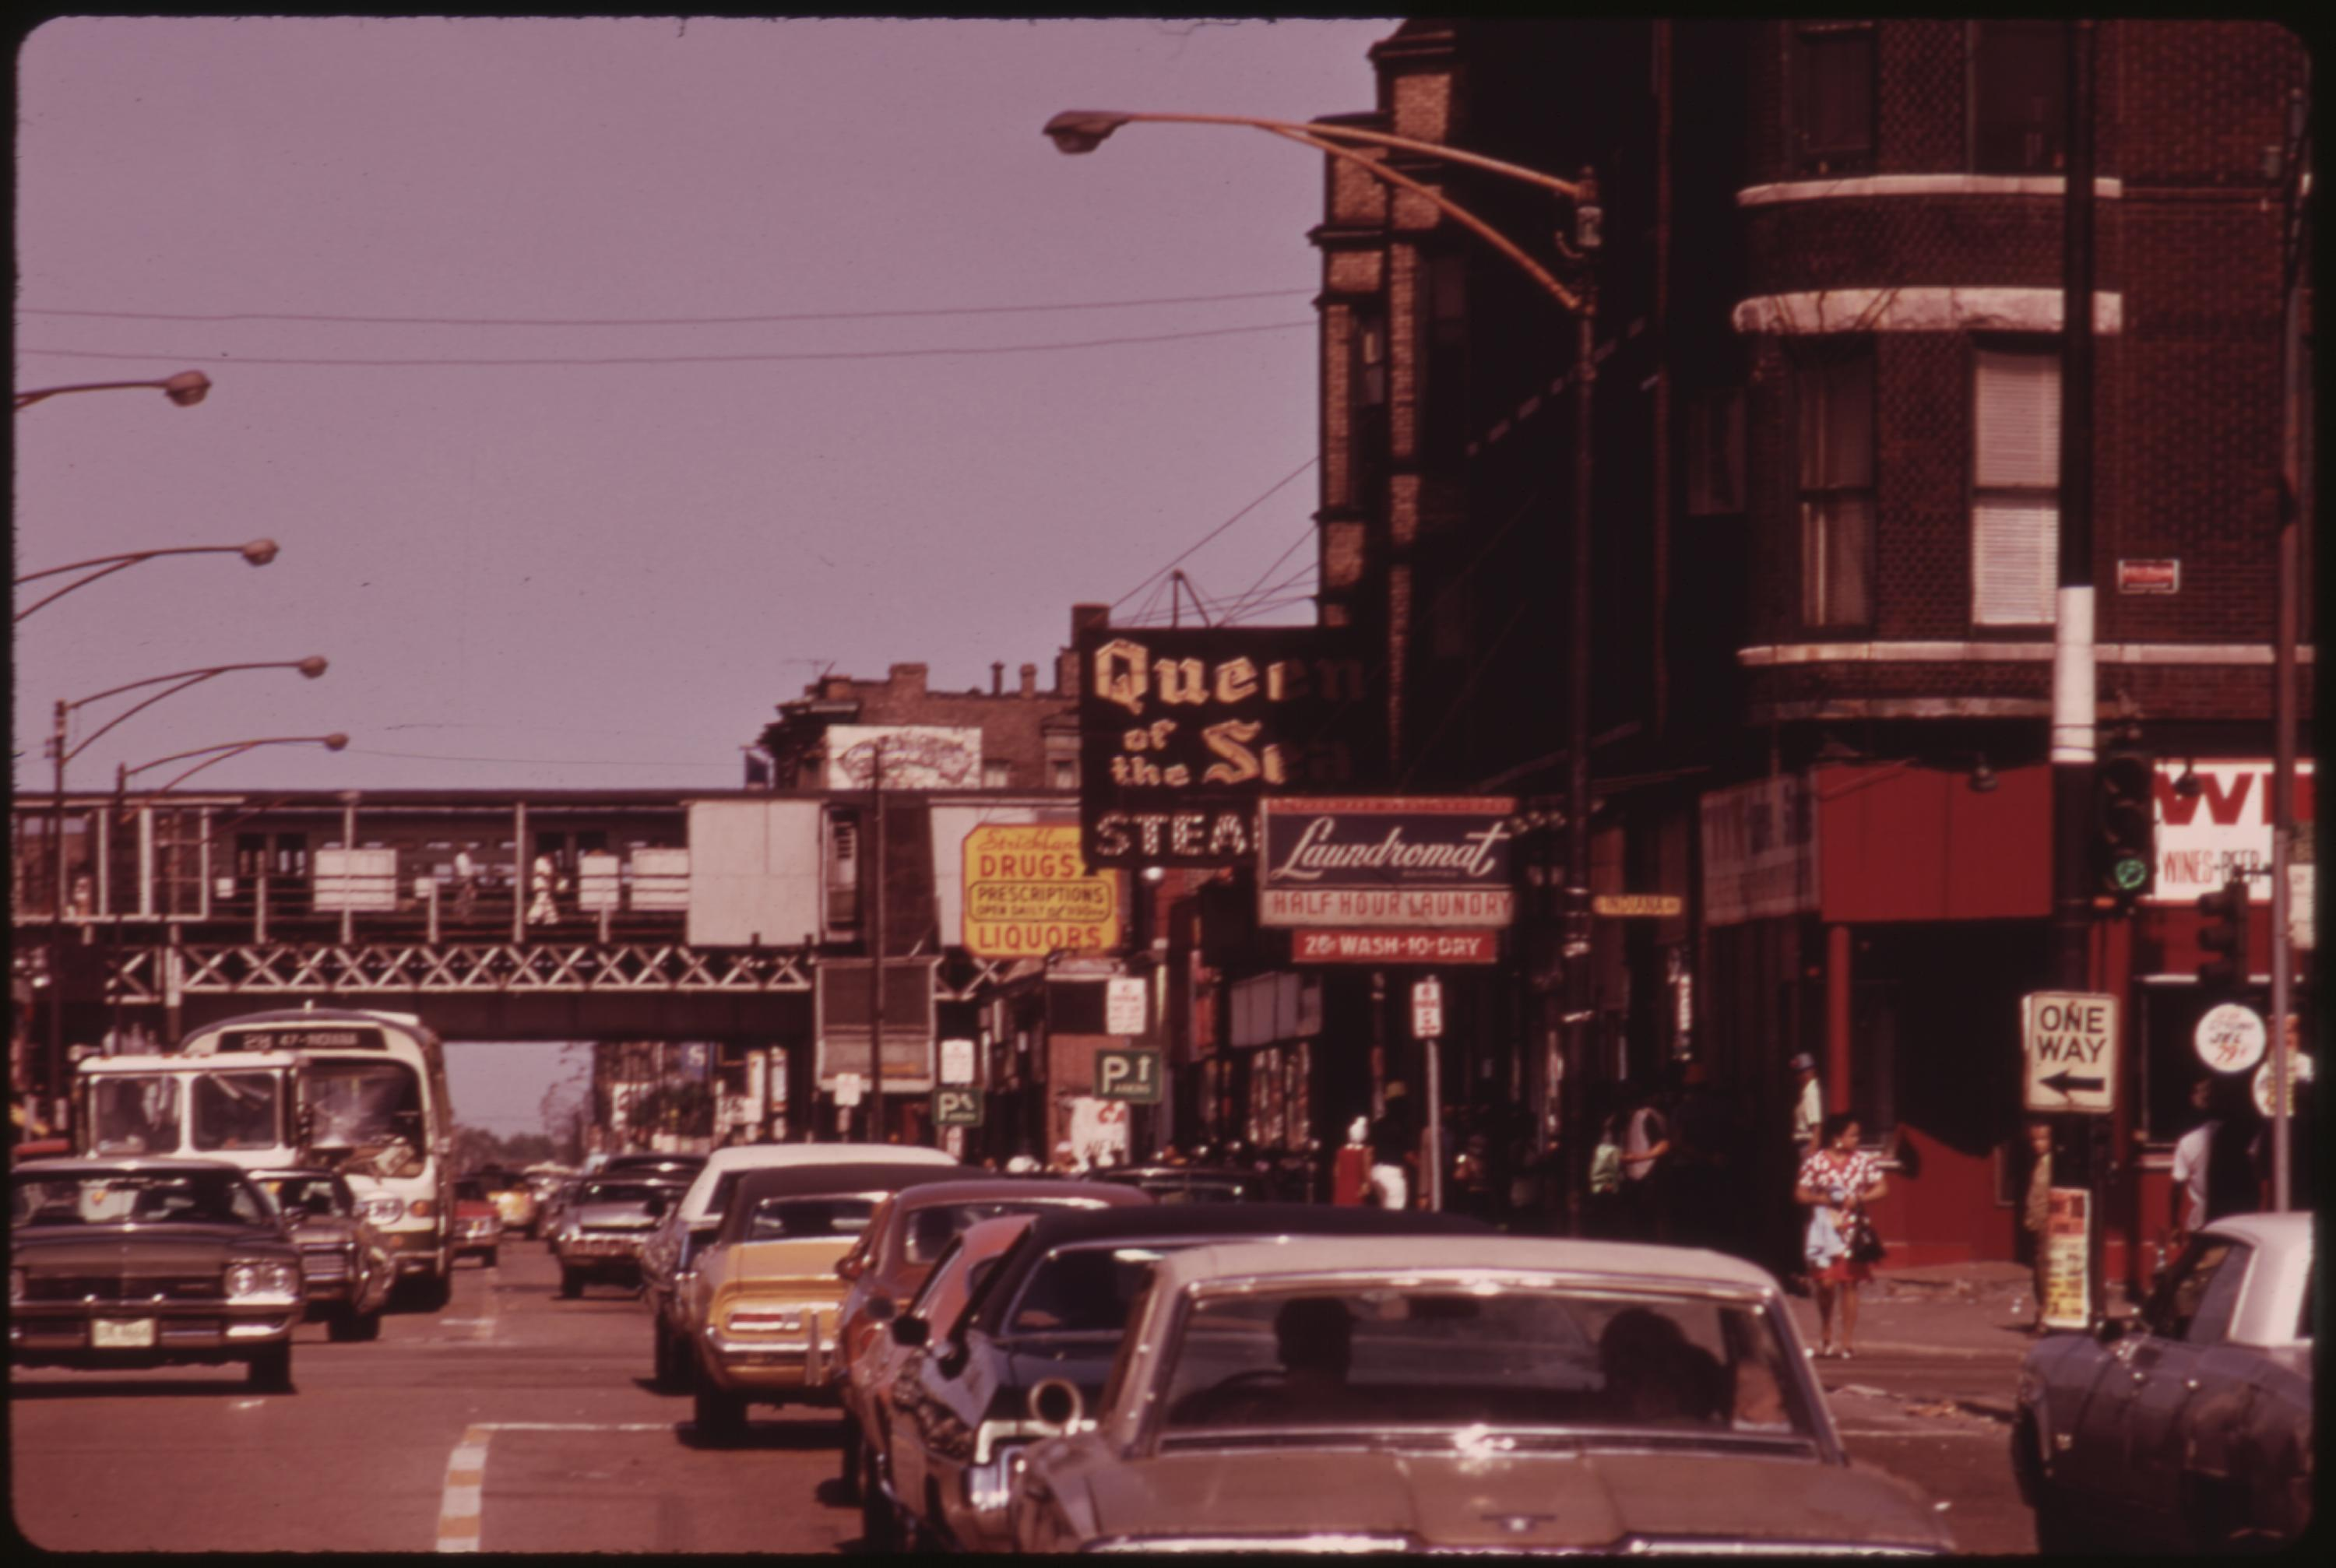 Scene In South Side Chicago On 47th Street, A Busy Thoroughfare Where Many Small Black Businesses Are Located Many Of The City's Black Business Owners Started With Small Operations And Grew With Hard Work, 06:1973